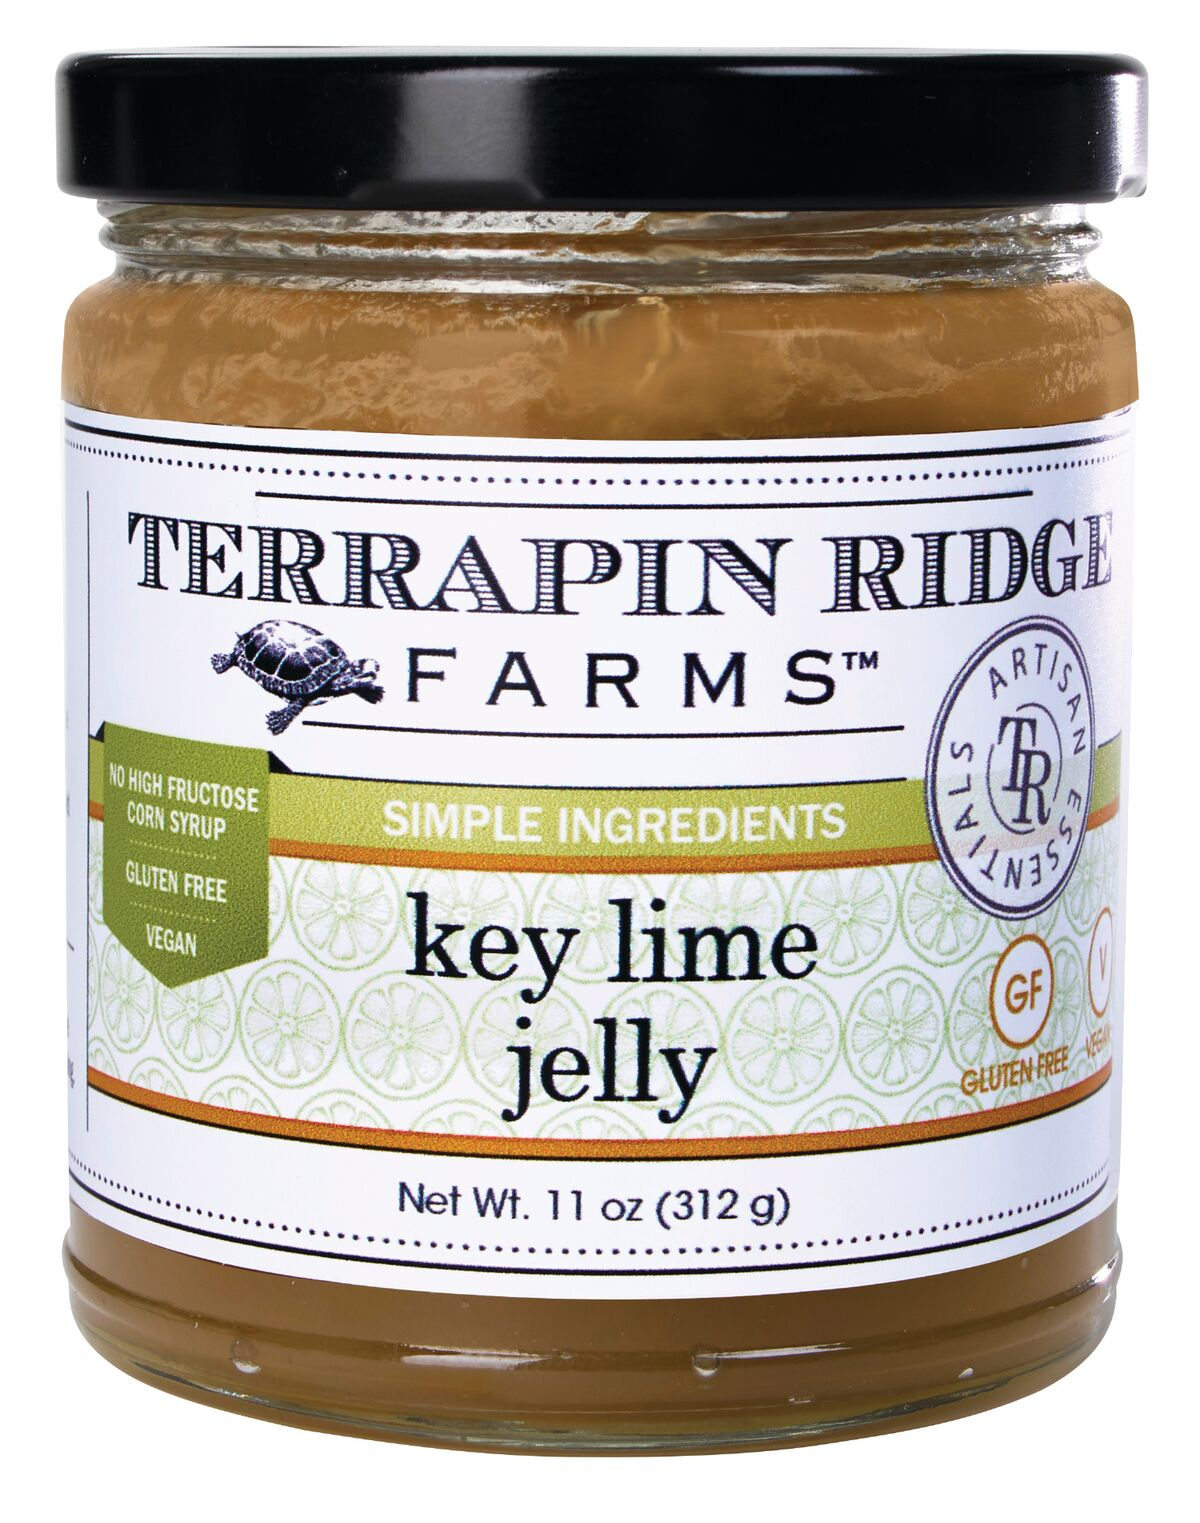 Terrapin Ridge Farms Introduces Seven New Products